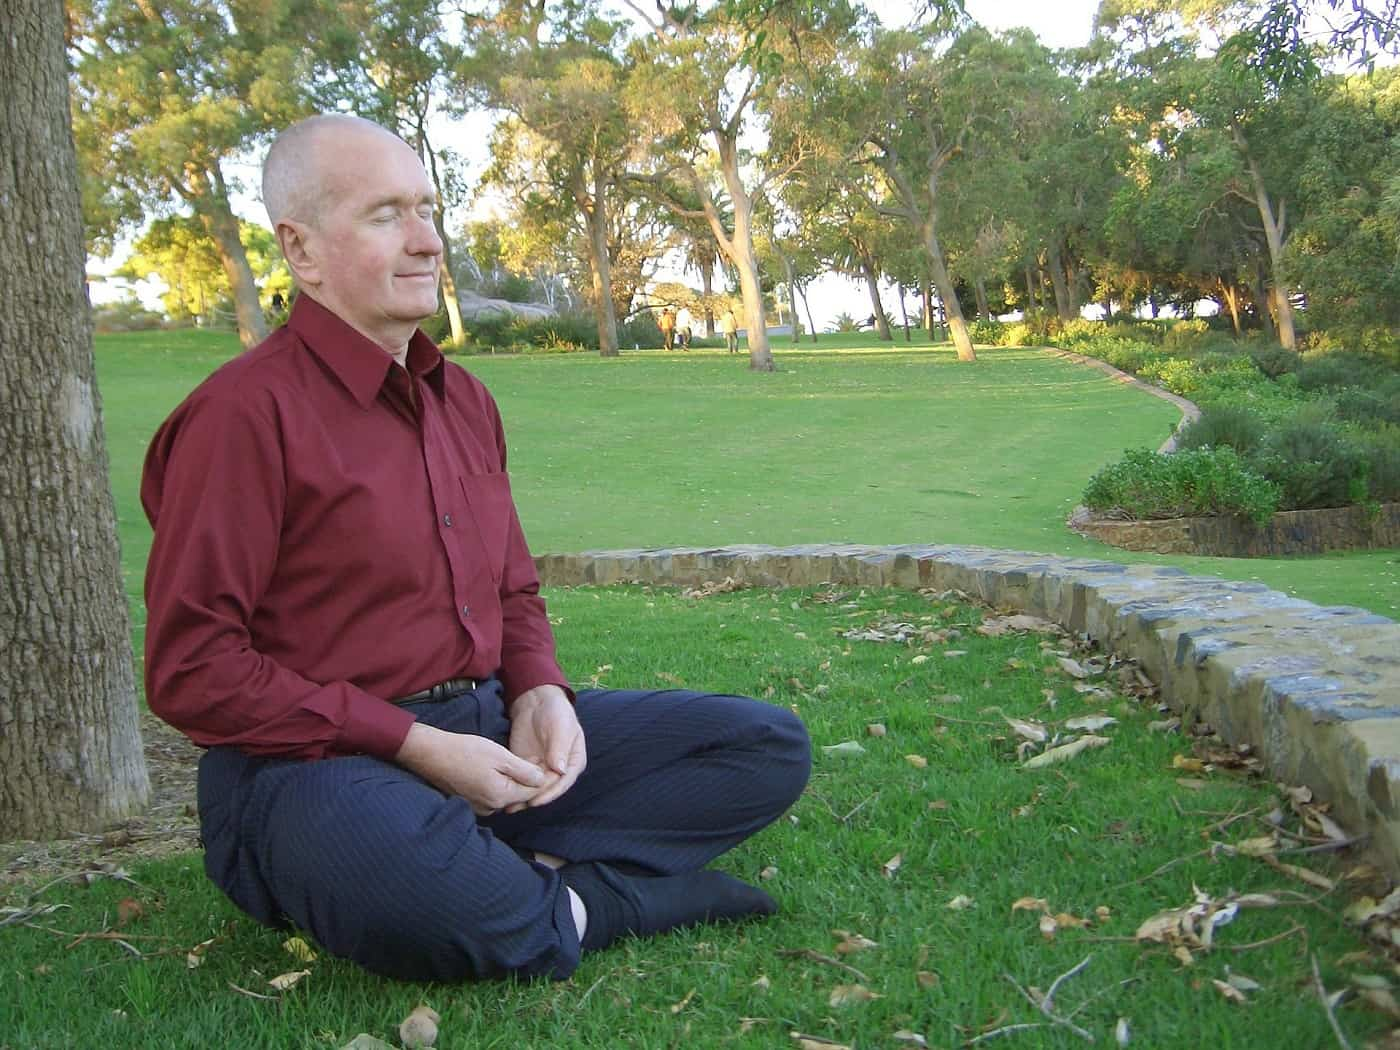 Senior man meditating outdoors - The 4 basic stages of meditation